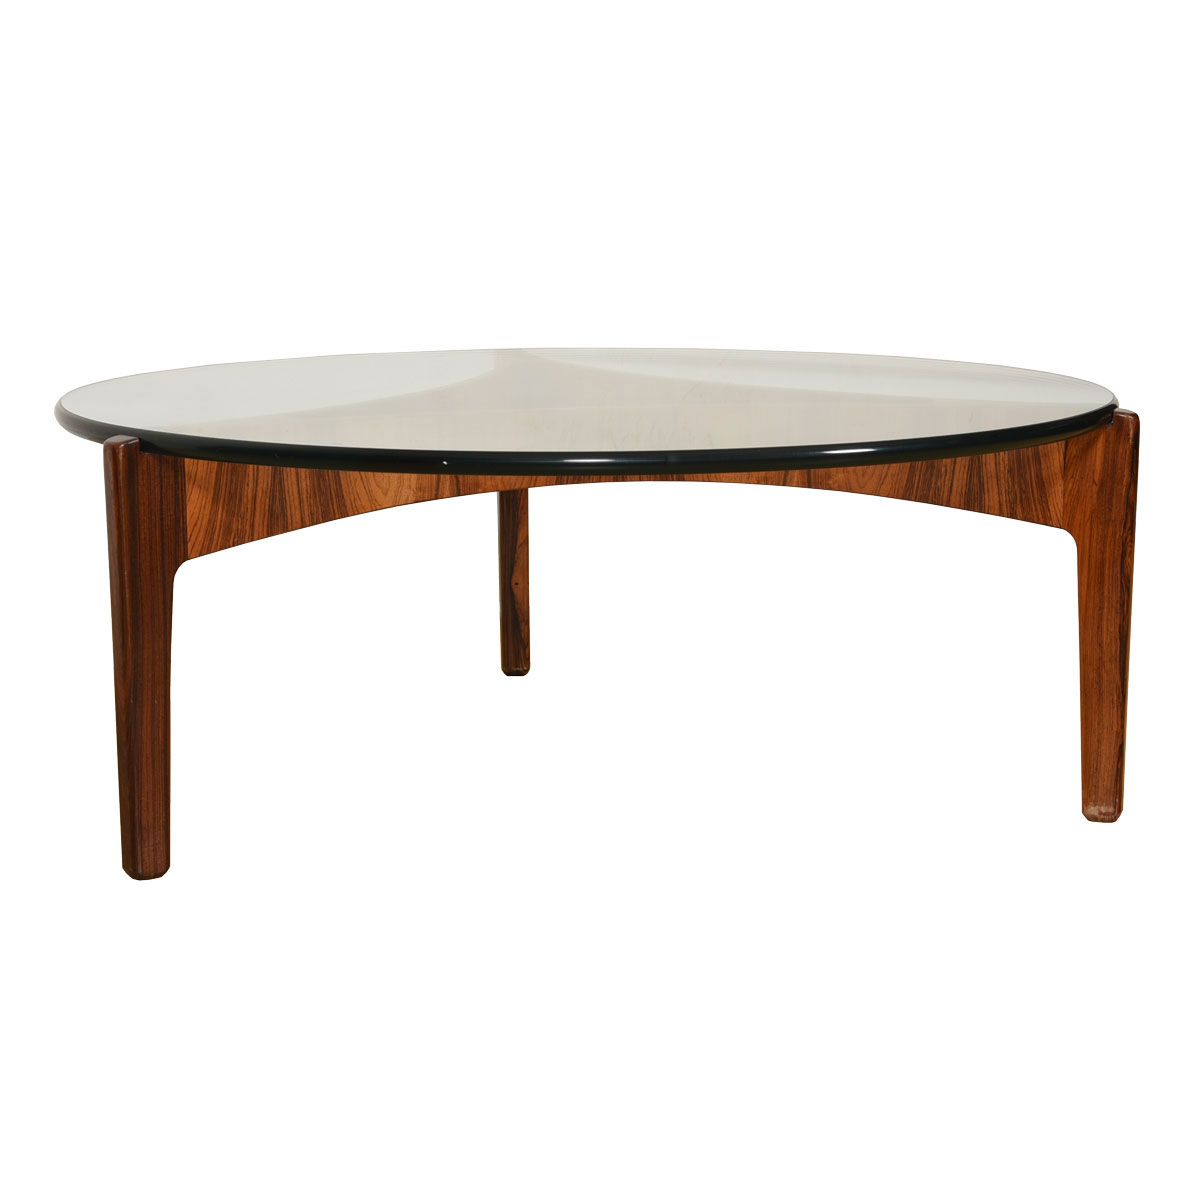 Sven Ellekaer Danish Rosewood Reverse Trefoil Floating Top Coffee Table